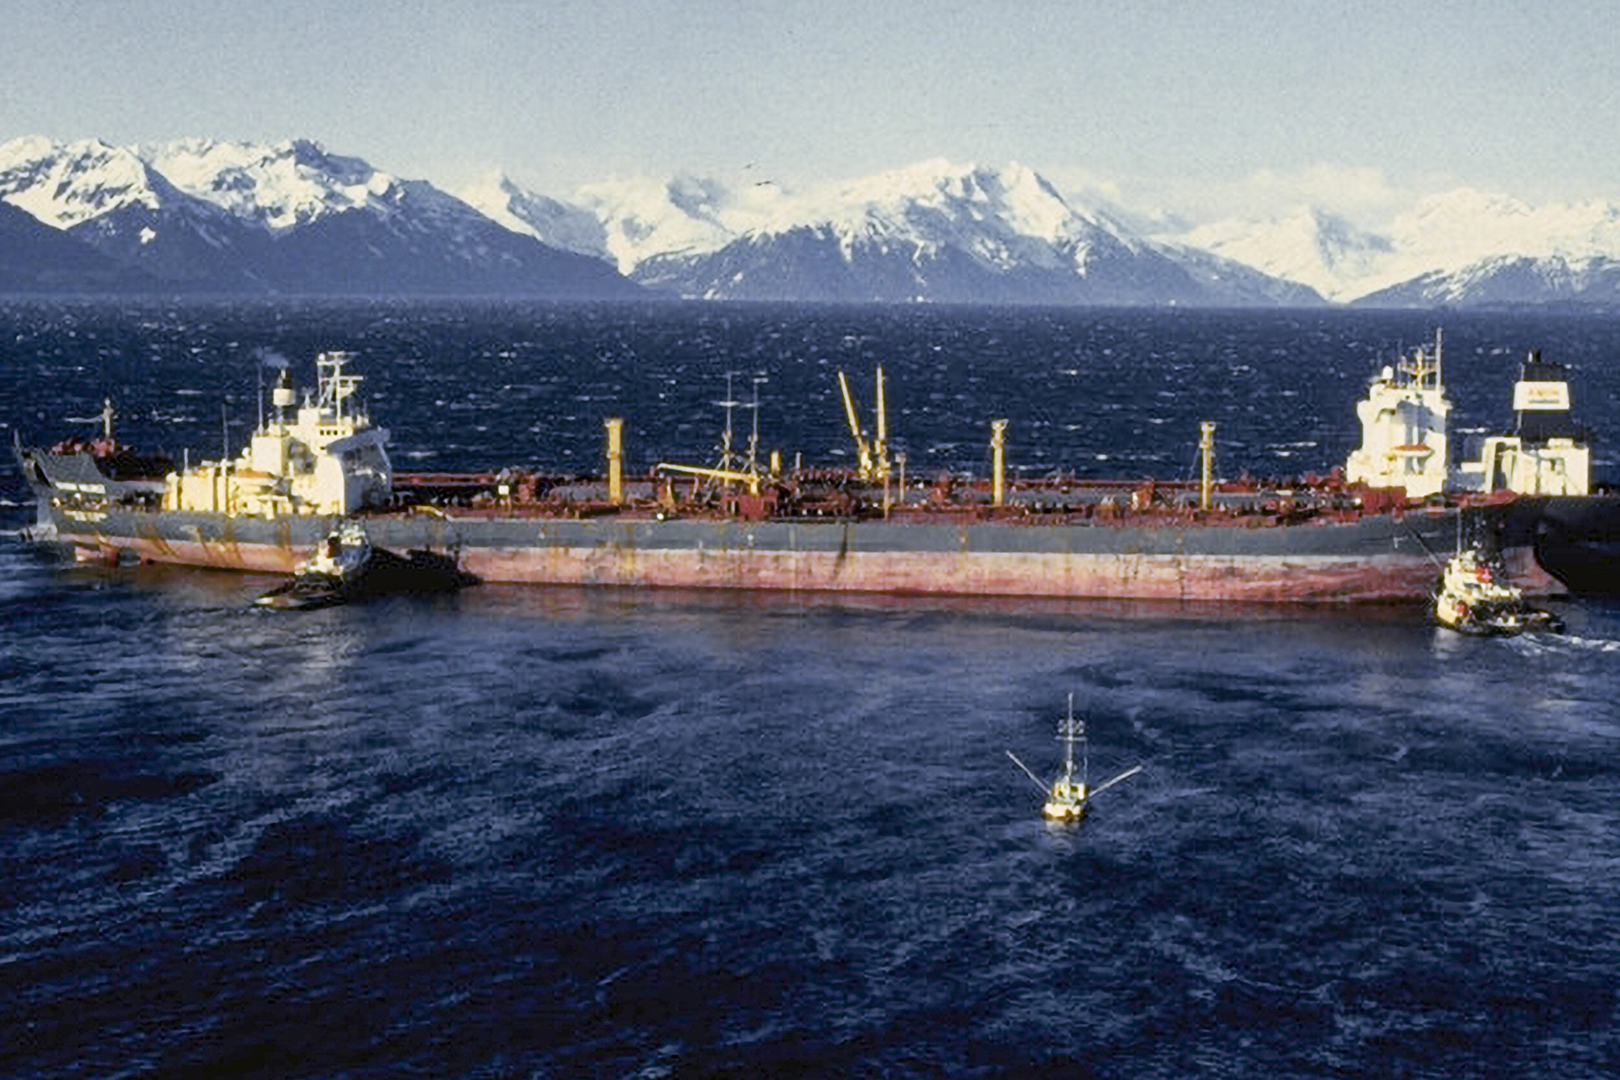 A vessel in water with snowy mountains in the background.